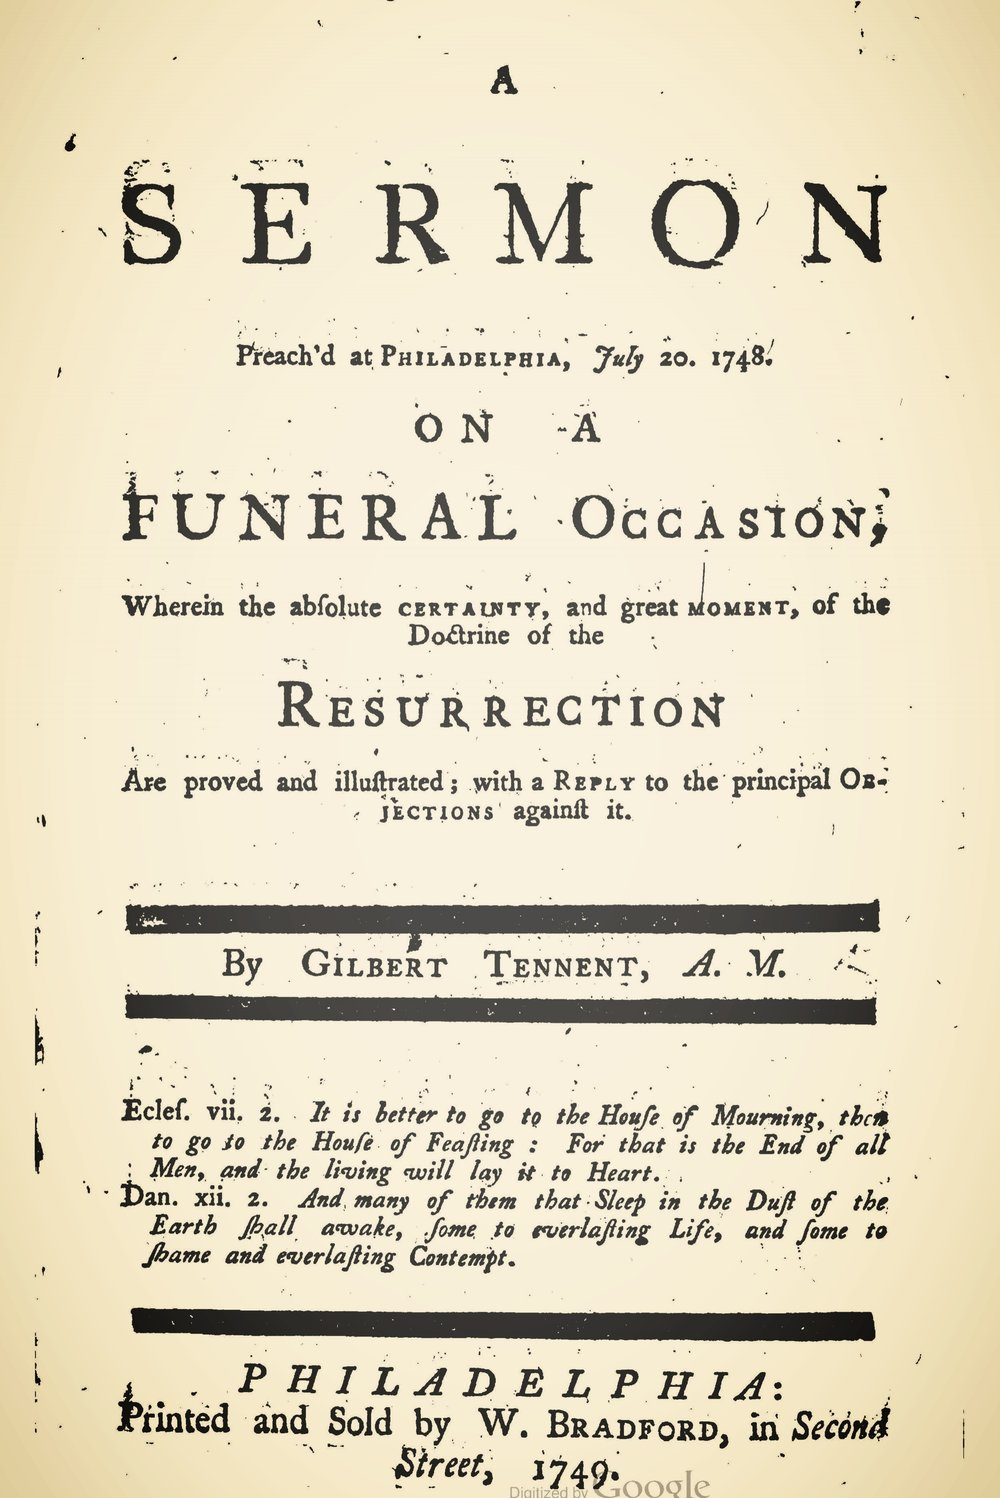 Tennent, Gilbert, A Funeral Sermon...Doctrine of the Resurrection Title Page.jpg